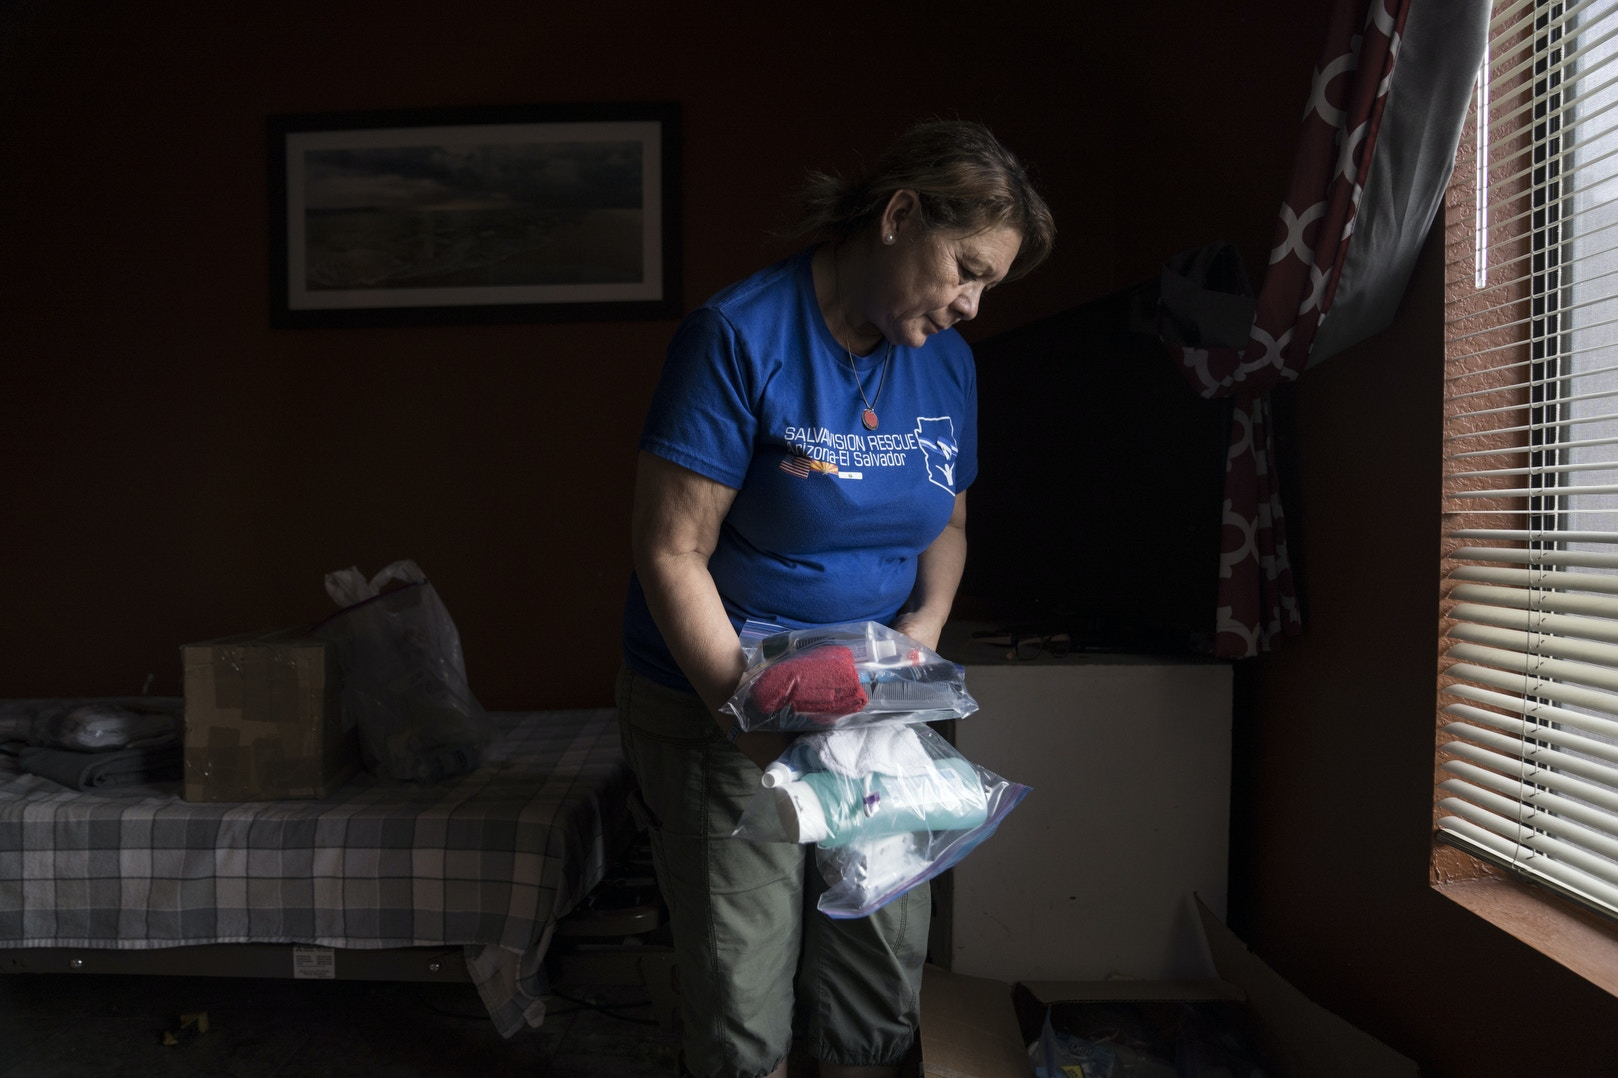 TUCSON, AZ - MARCH 13, 2020:Dora Rodriguez keeps donated items for asylum seekers in her home in Tucson, Arizona on March 13, 2020. She makes individual care packages from the donated items and then distributes them on a weekly basis to asylum seekers in Nogales, Mexico.In 1980 19-year-old Dora Rodriguez, from El Salvador, made the difficult journey of crossing into the US near Lukeville, AZ on foot. Of the 26 individuals she crossed the Sonoran desert with 13 died in the gruelling heat, one of the pre-eminent events that led to the Sanctuary Movement. Dora eventually naturalised in the US and started an advocacy group, Salvavision Rescue Arizona, to support asylum-seekers. On a weekly basis Dora visits asylum seekers in detention centres, writes them letters, fundraises and brings donated supplies to the migrant camps on the Mexican side of the US - Mexico border. Photo by Kitra Cahana/MAPS for The Intercept